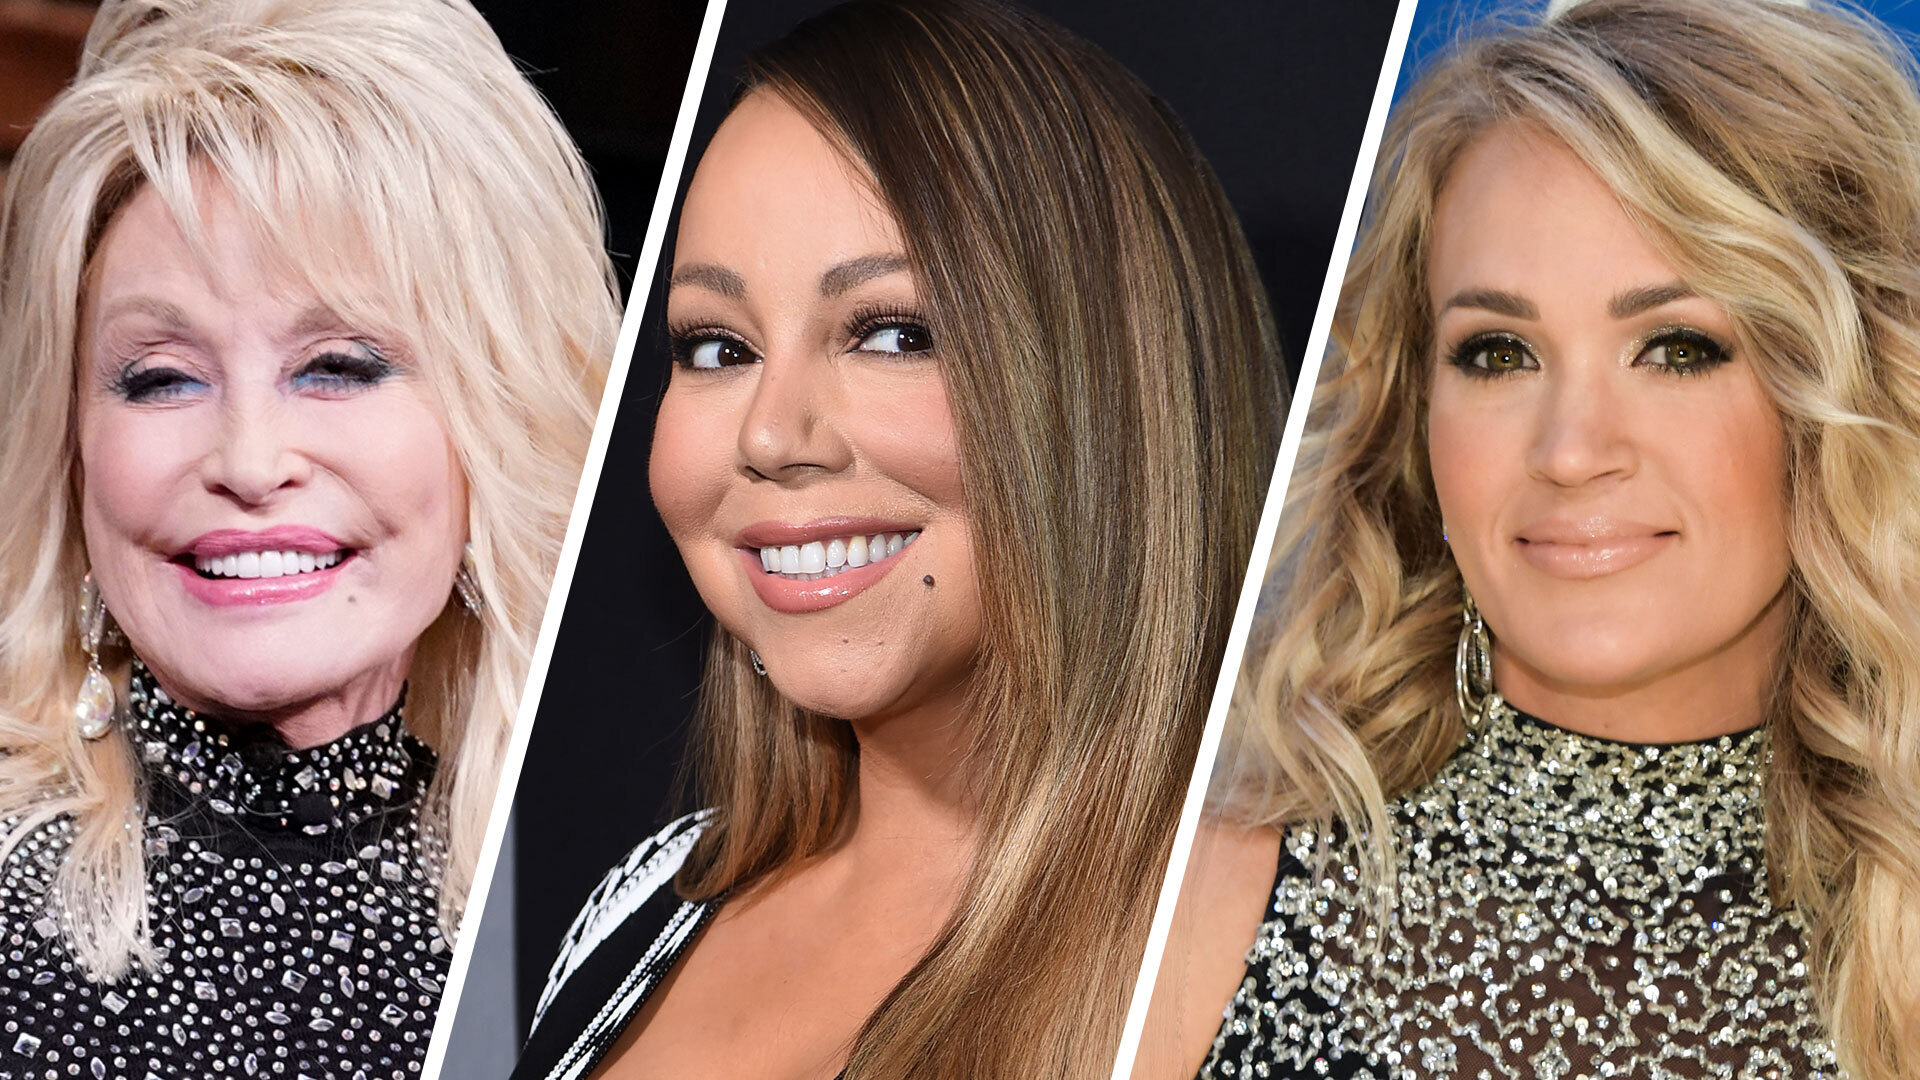 The It List: Carrie Underwood, Mariah Carey, Dolly Parton celebrate with holiday TV specials, David Fincher's 'Mank' debuts, 'Y&R' soap airs 12,000th episode and the best in pop culture the week of Nov. 30, 2020